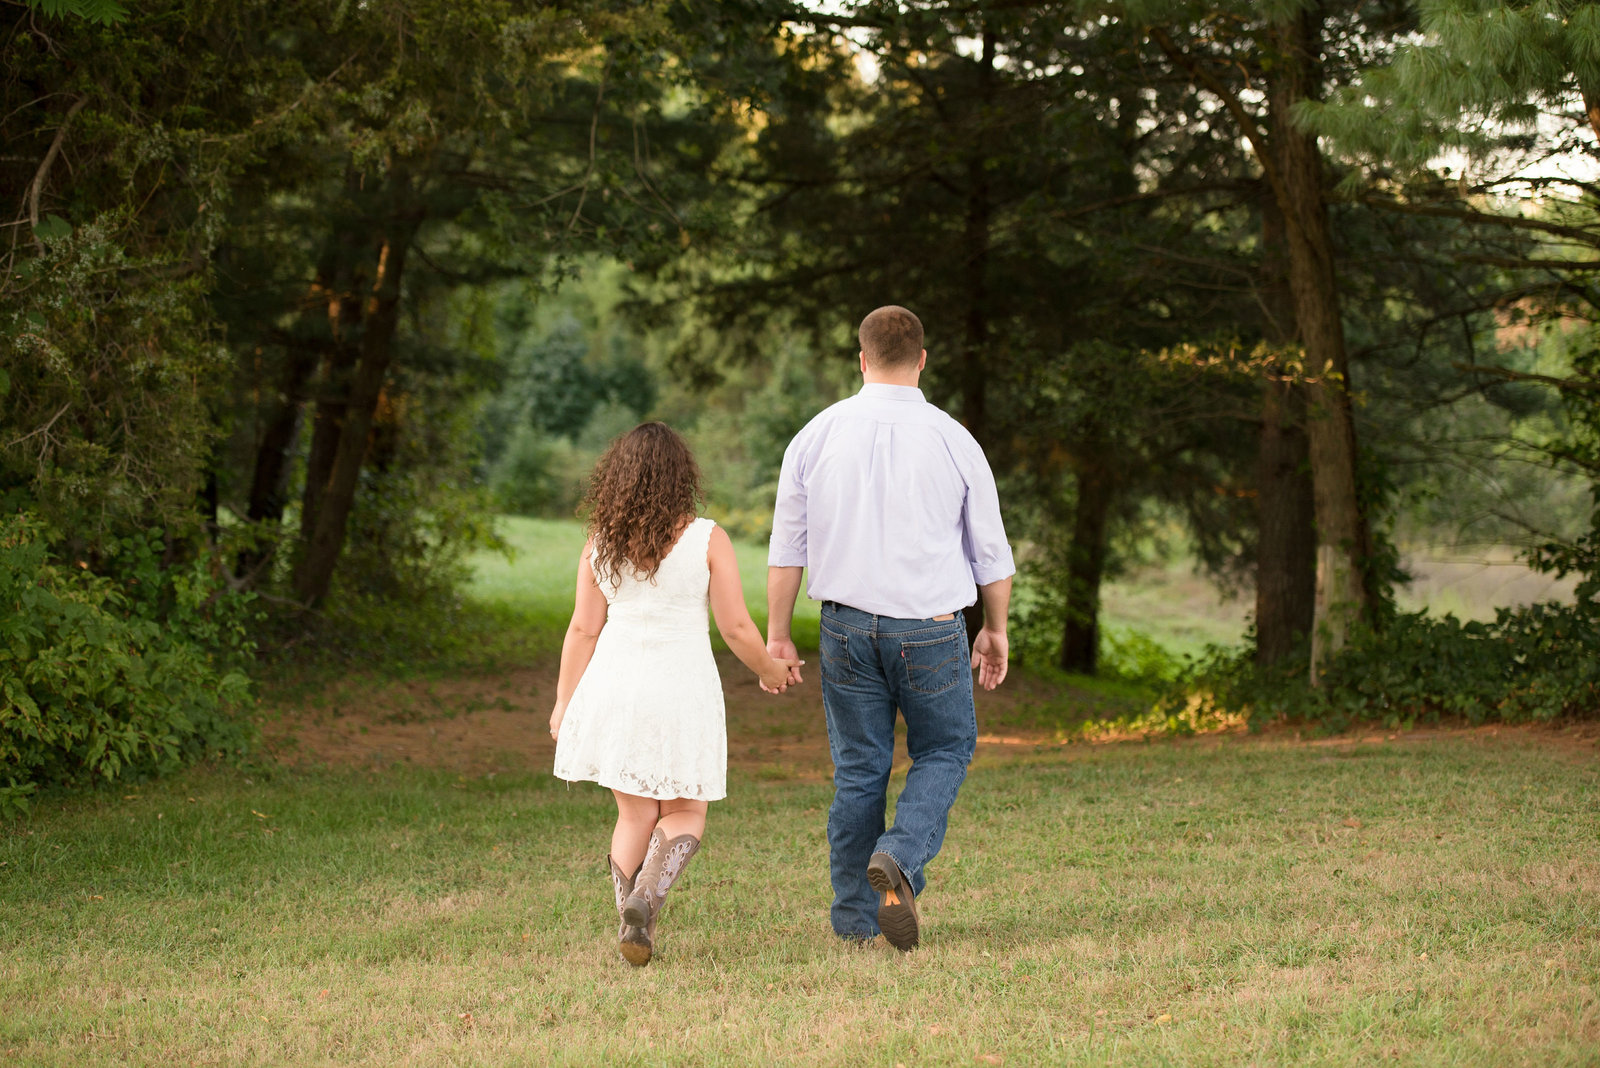 NJ_Rustic_Engagement_Photography128